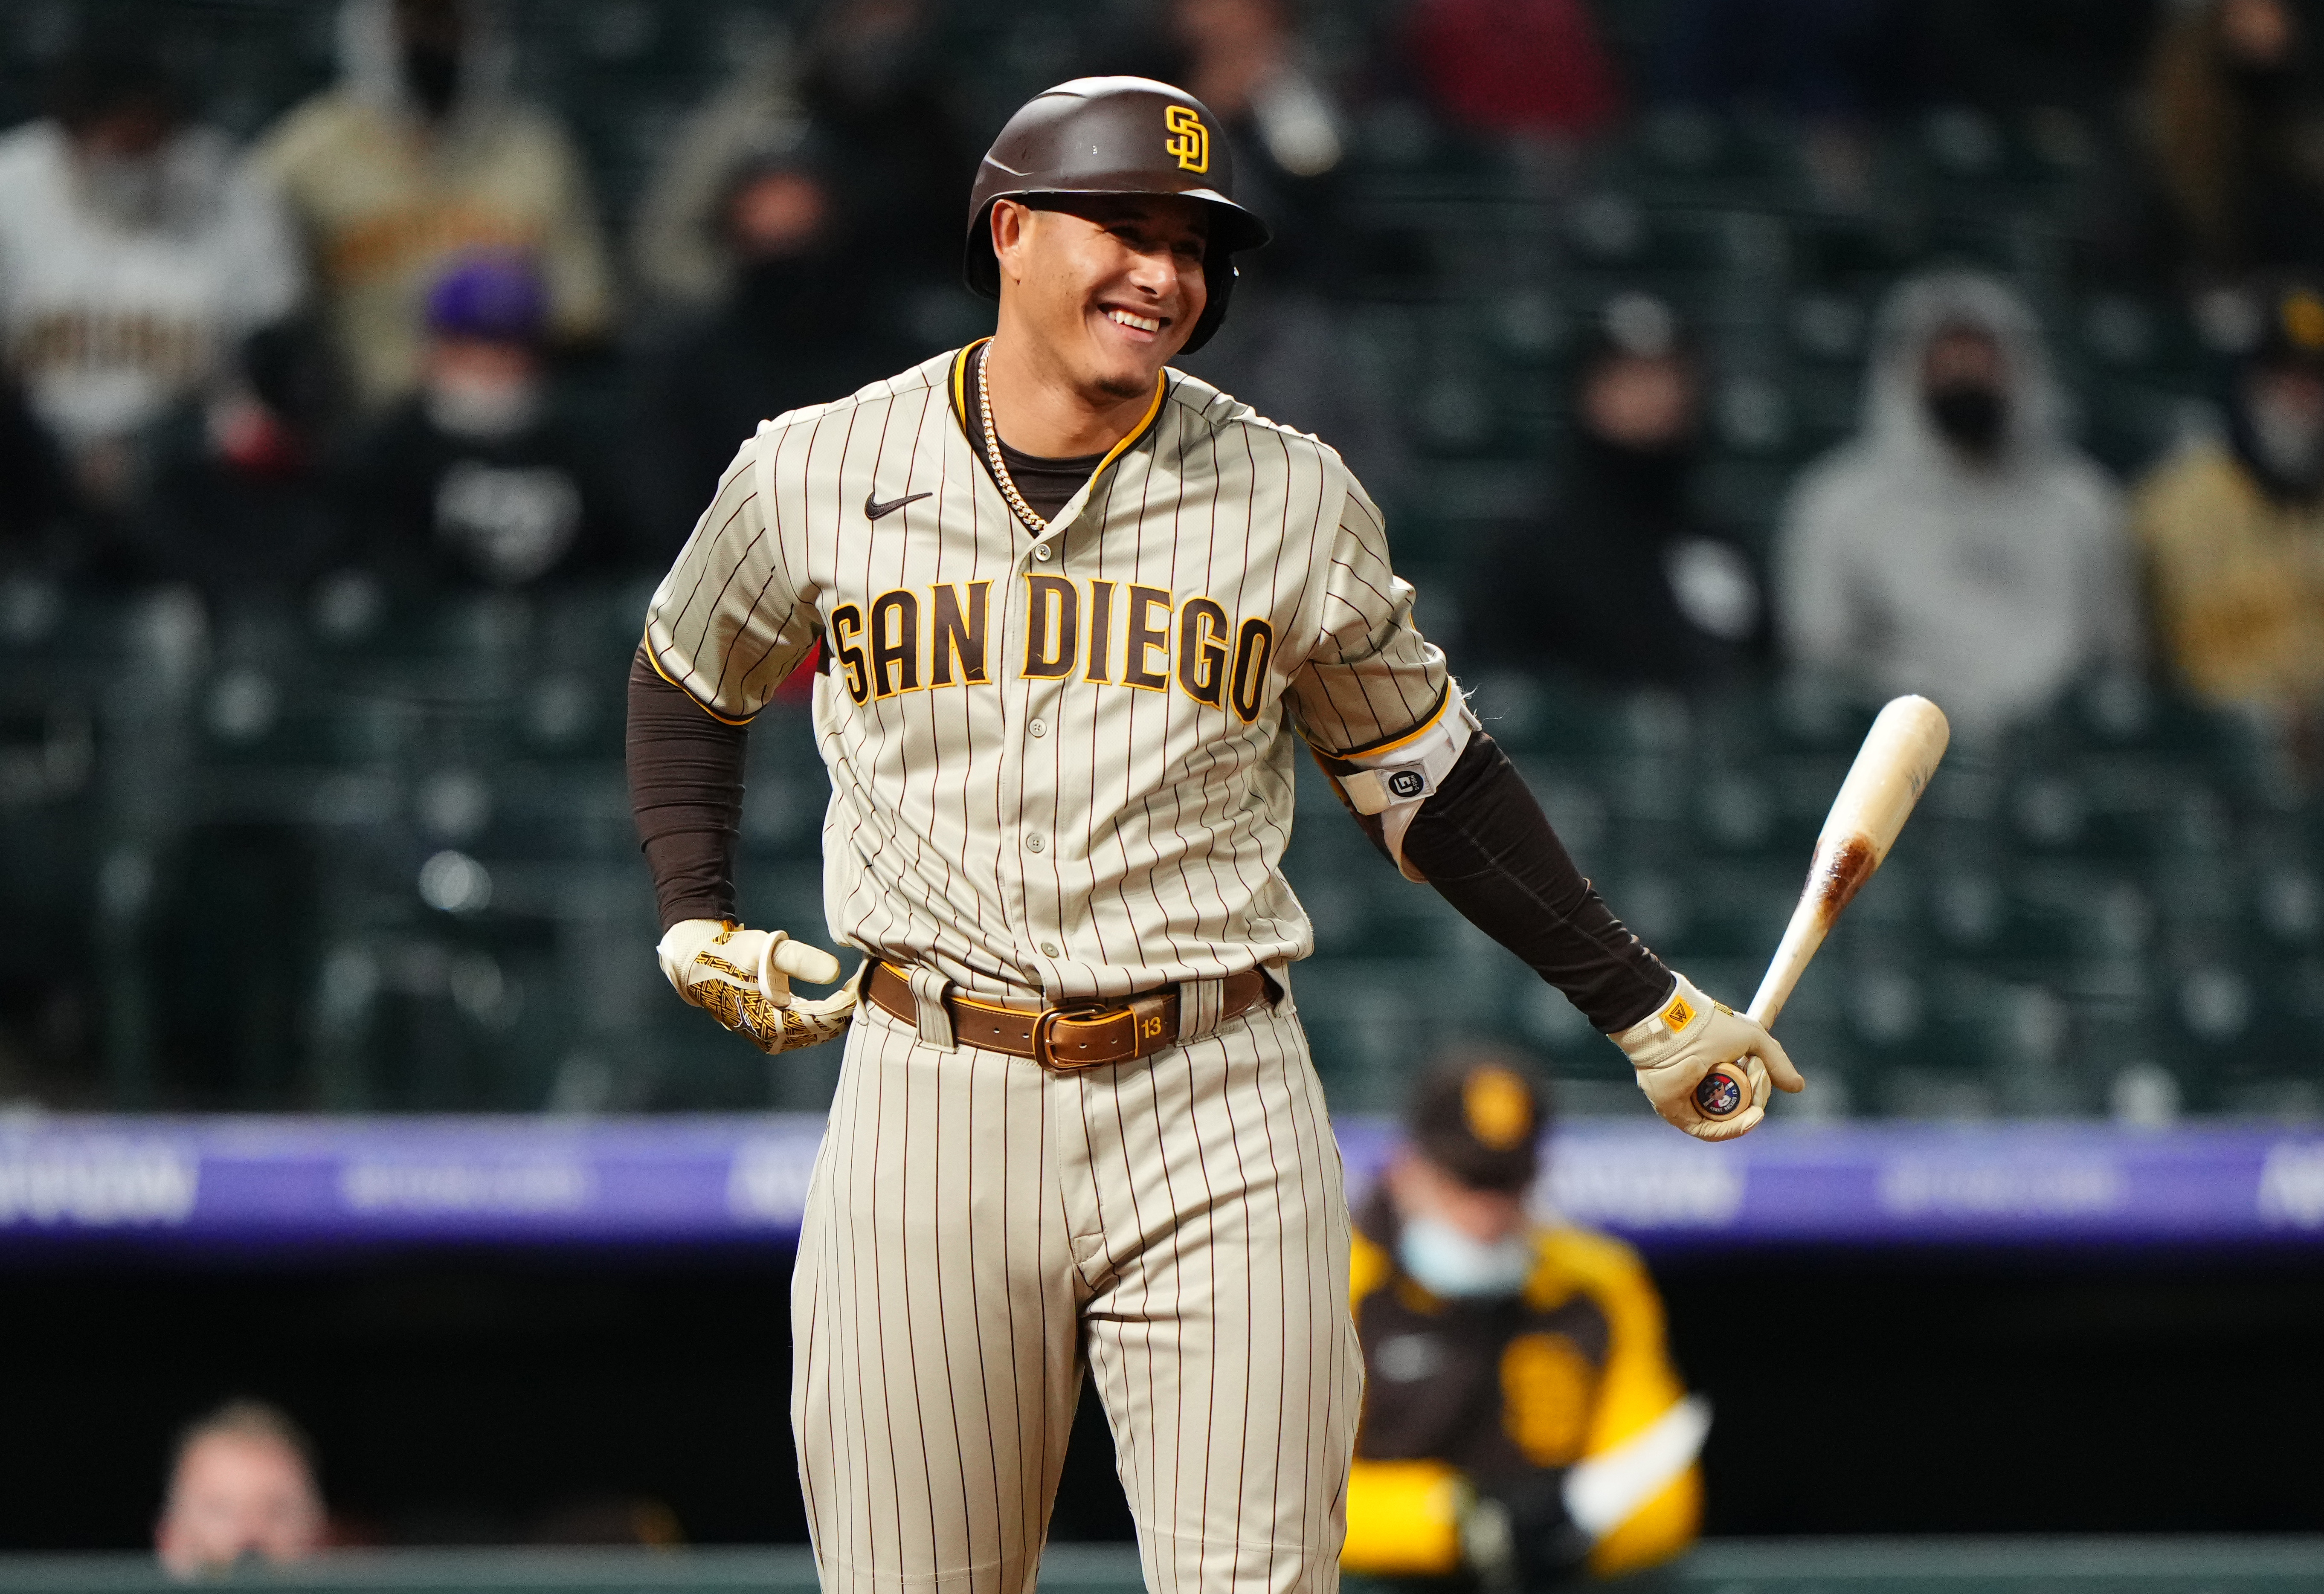 May 11, 2021; Denver, Colorado, USA; San Diego Padres third baseman Manny Machado (13) reacts in the eighth inning against the Colorado Rockies at Coors Field. Mandatory Credit: Ron Chenoy-USA TODAY Sports